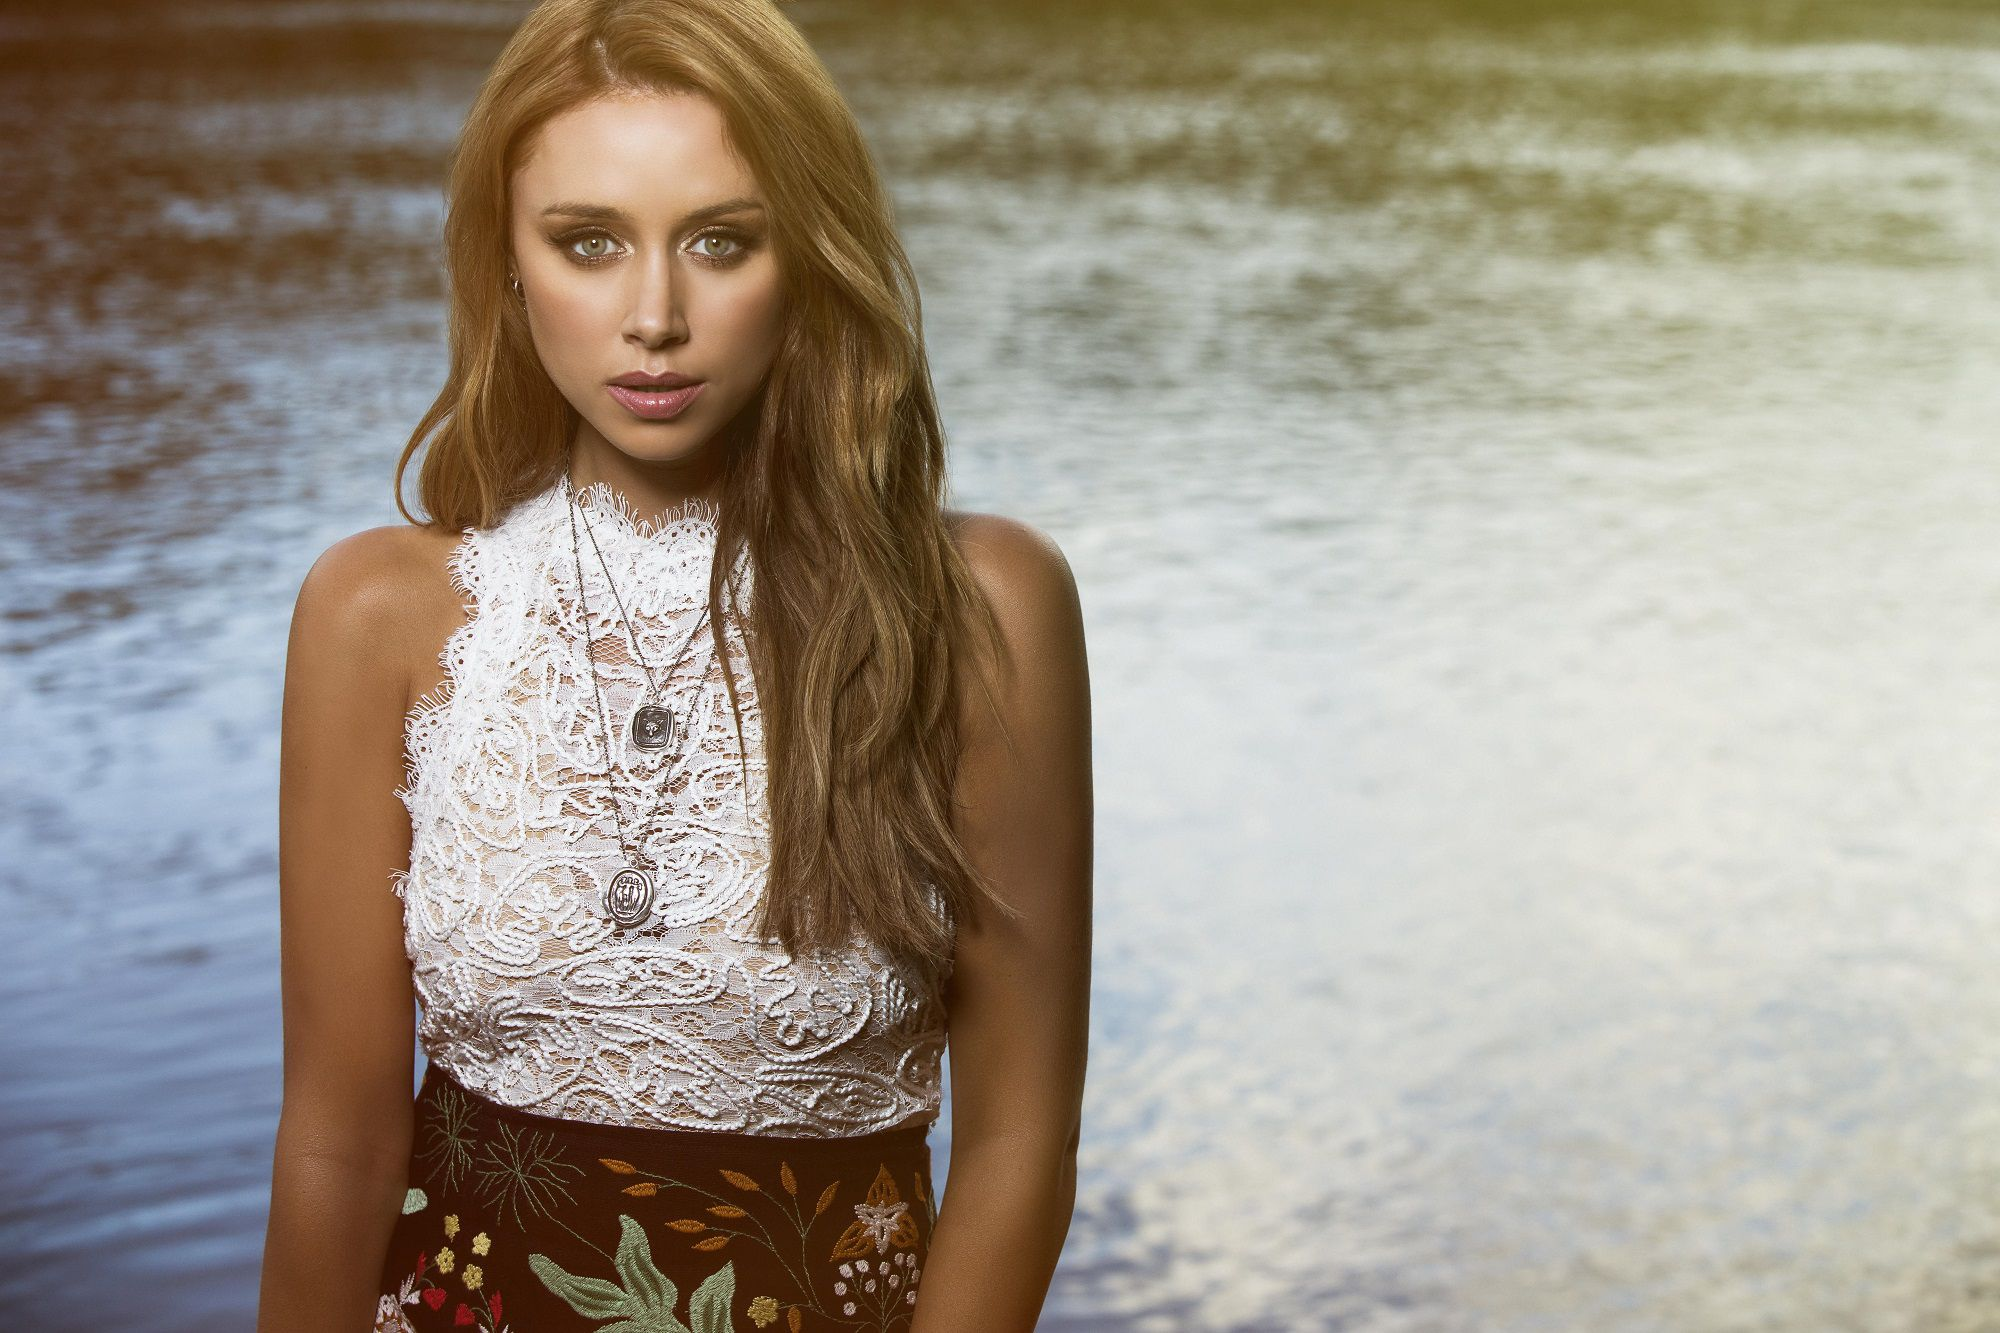 Ireland: Una Healy reported as potential Eurovision 2019 representative